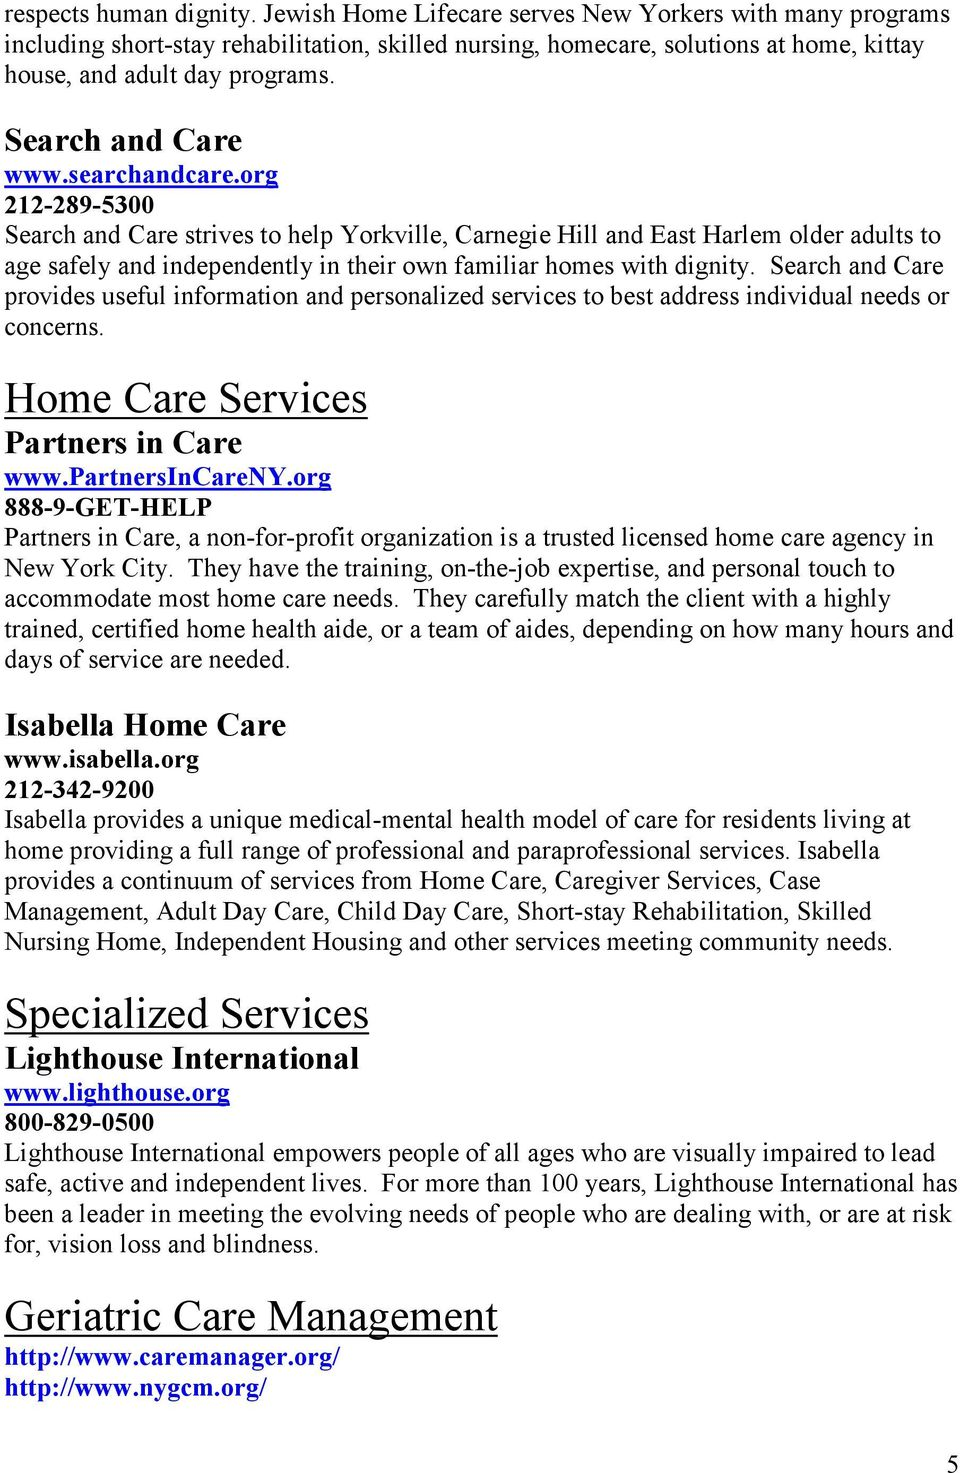 searchandcare.org 212-289-5300 Search and Care strives to help Yorkville, Carnegie Hill and East Harlem older adults to age safely and independently in their own familiar homes with dignity.